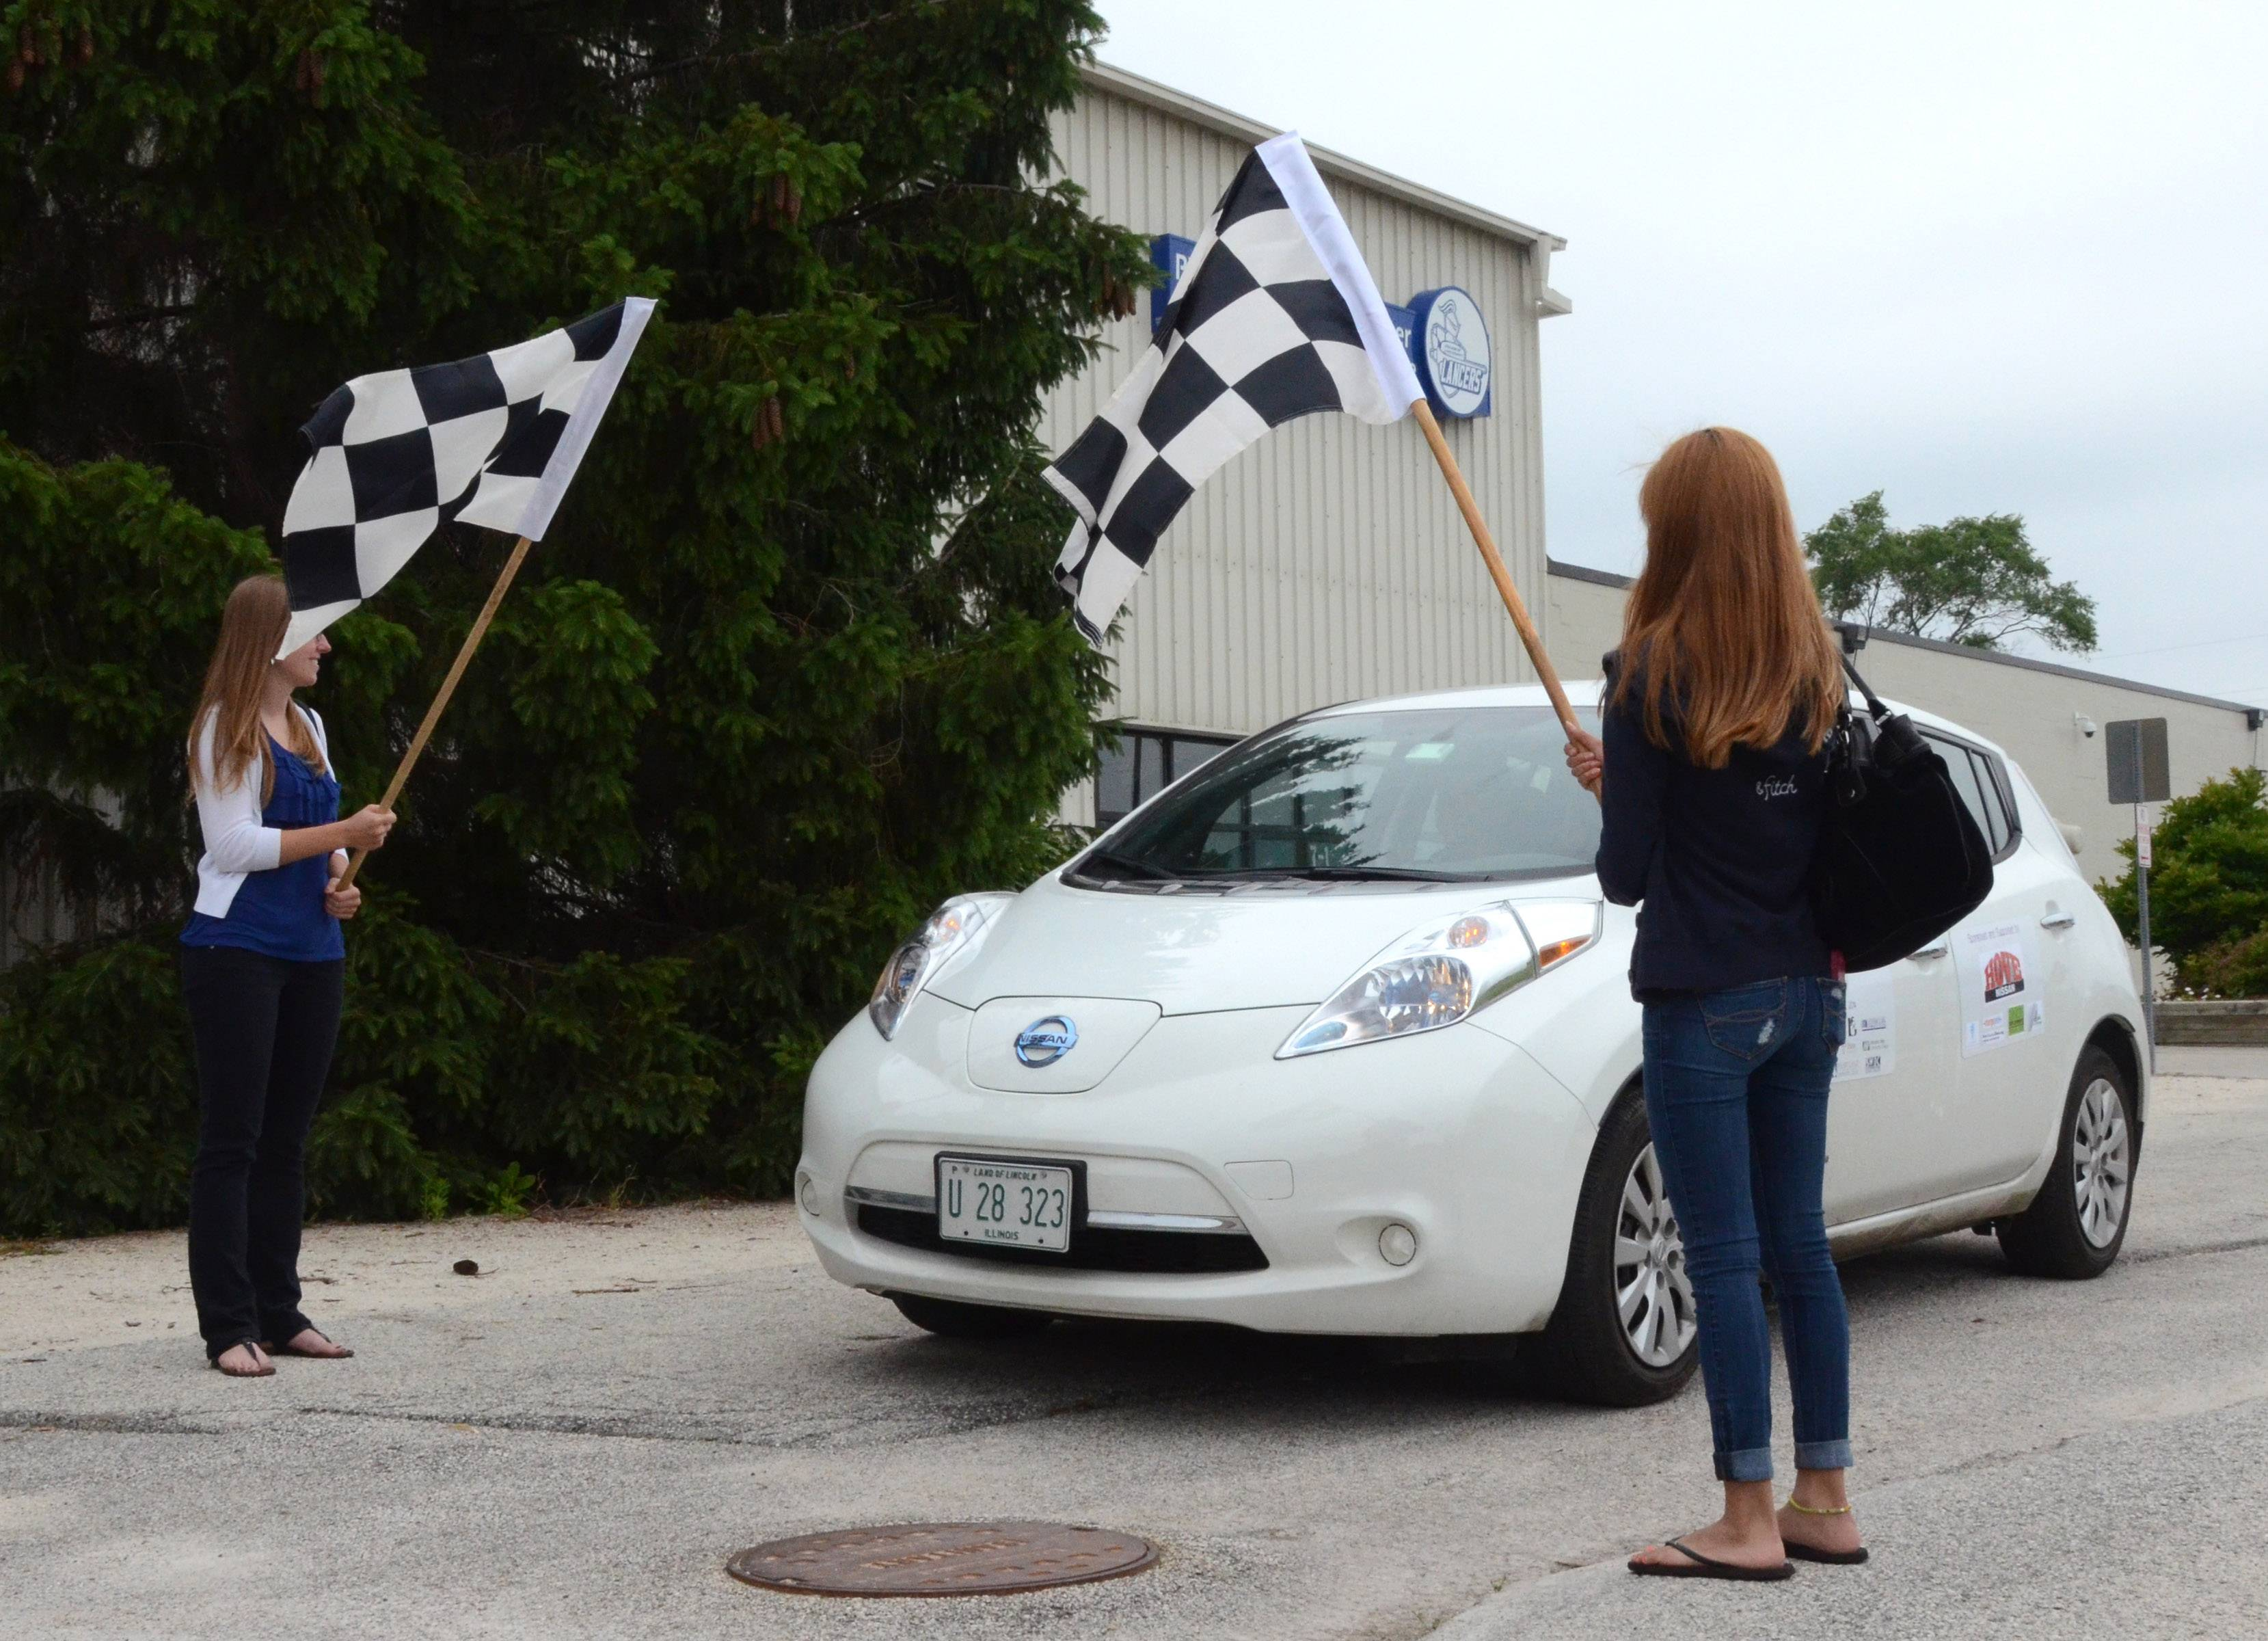 An electric vehicle road trip organized by the Illinois Green Economy Network and 10 participating community colleges made its final stop at the College of Lake County in Grayslake on June 25.